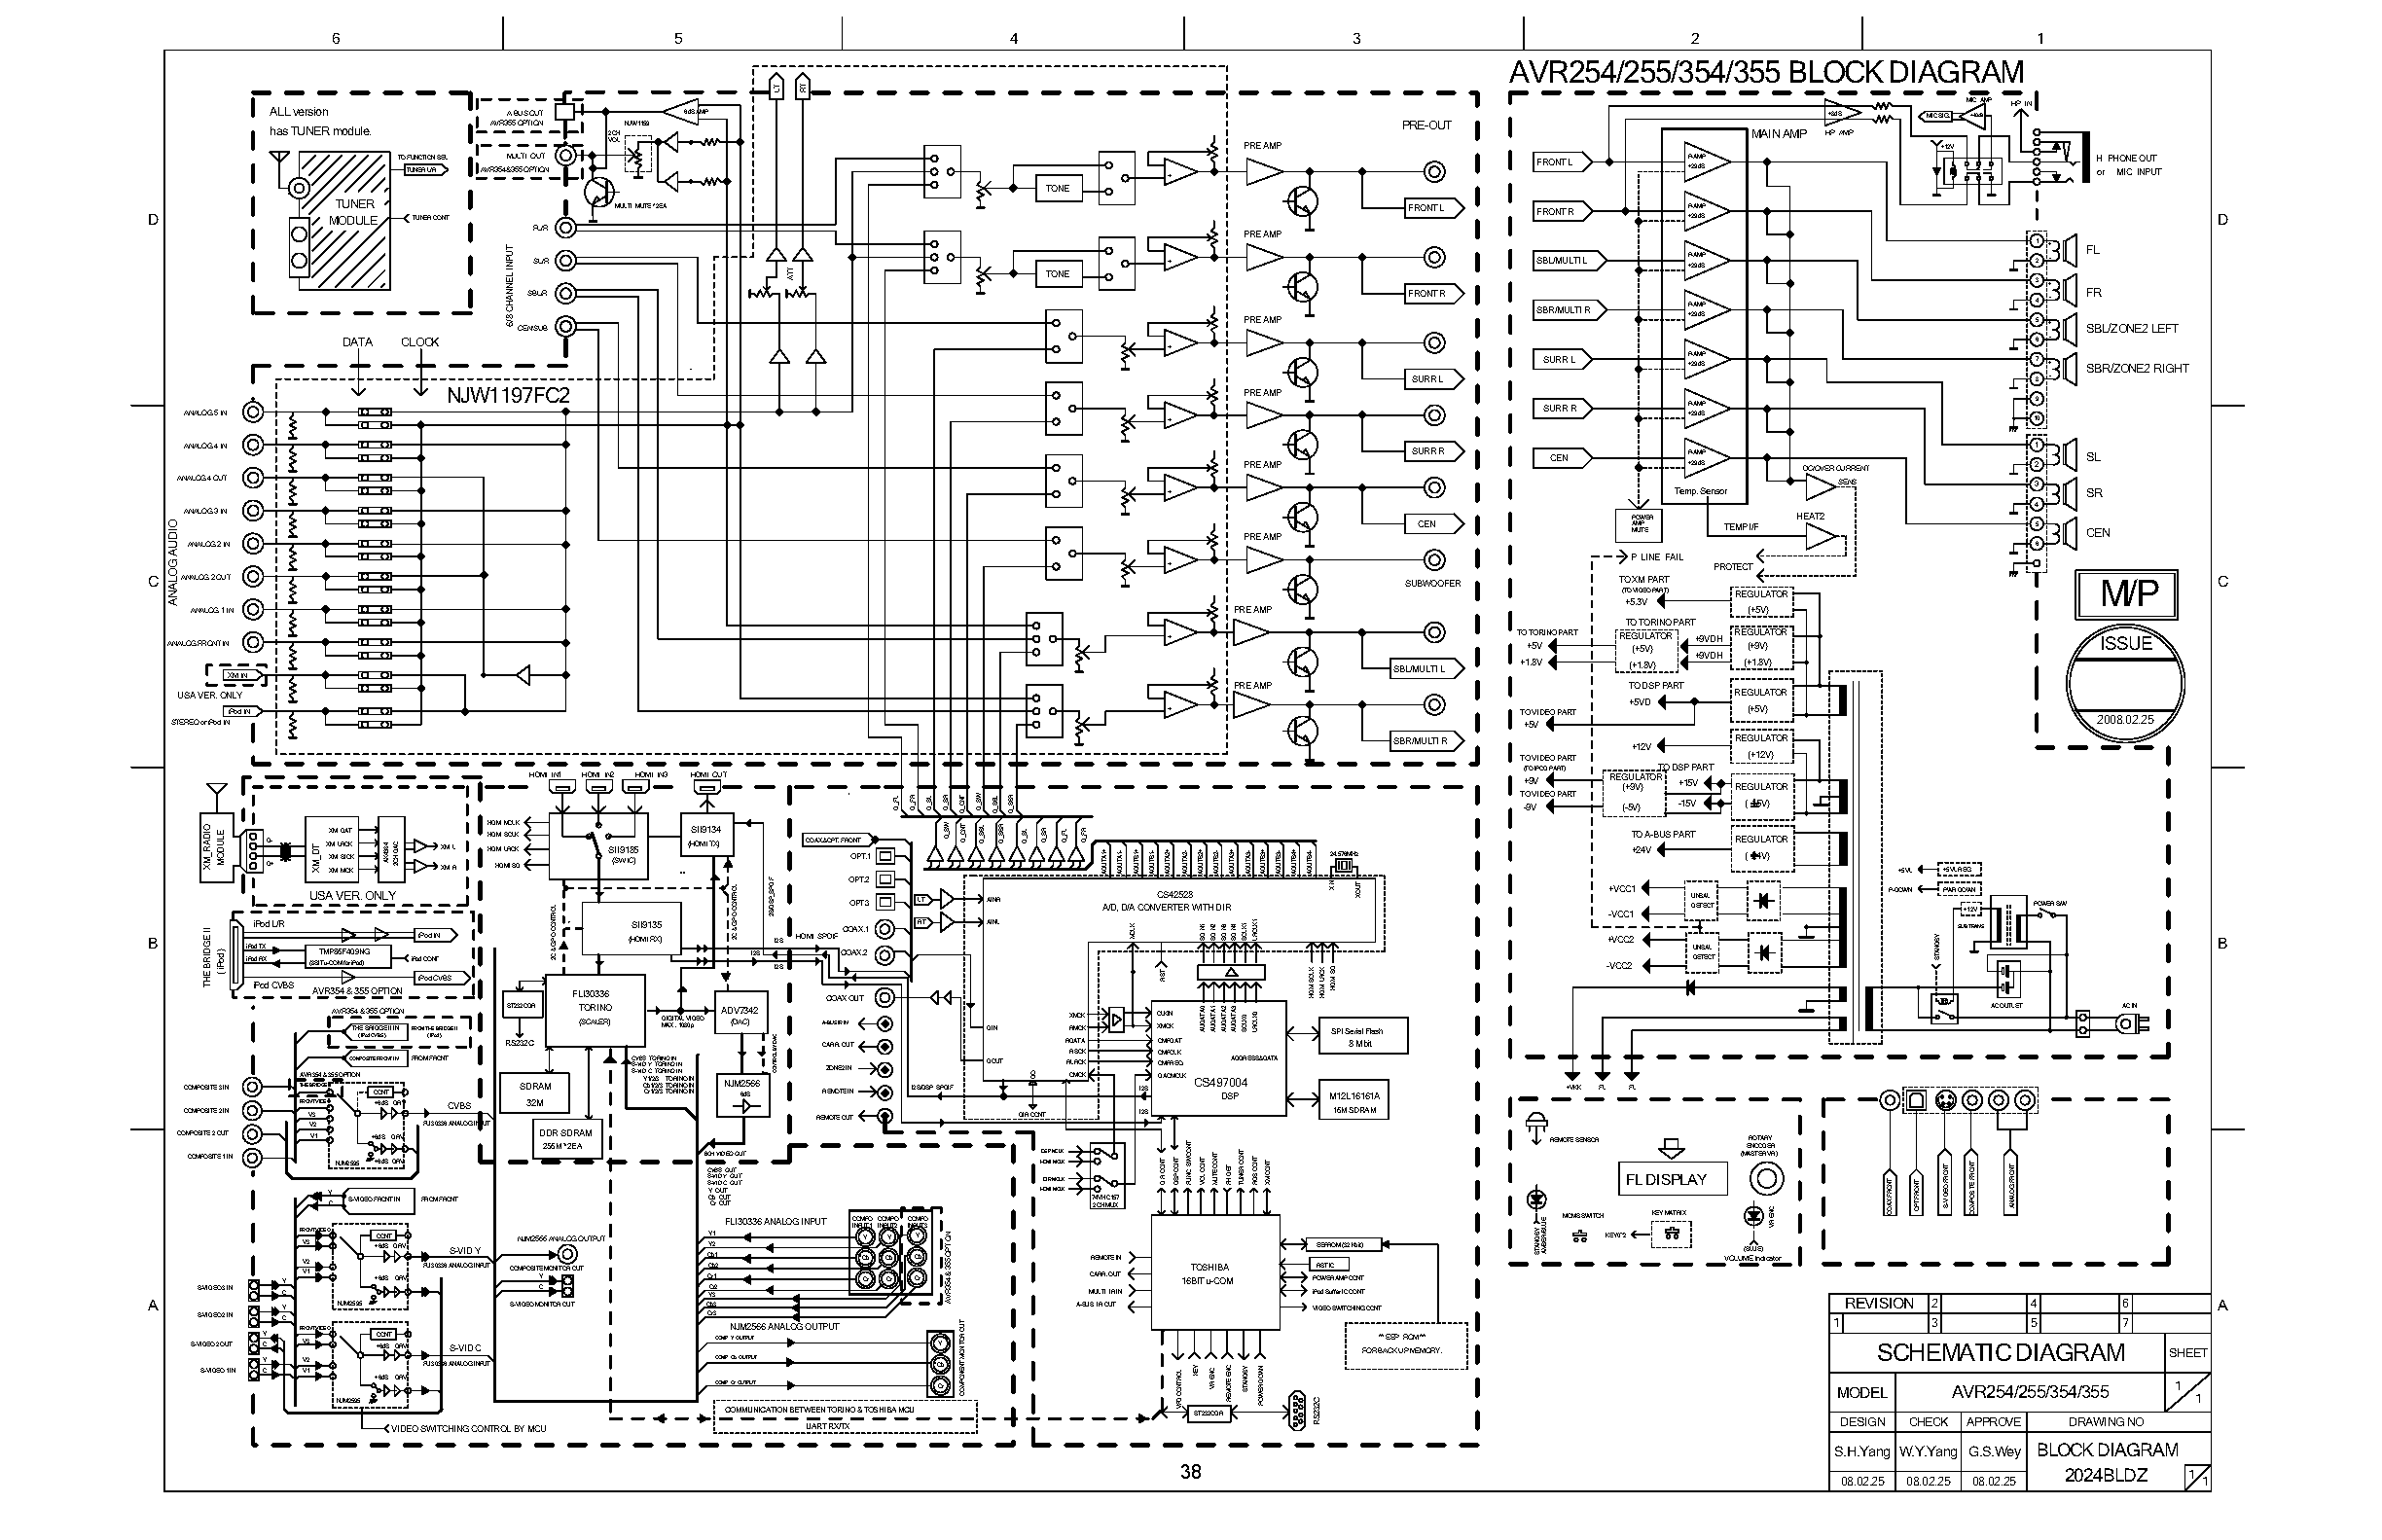 Harman Kardon E46 Wiring Diagram - 9.18.fuss-atelier.de • on 2010 street glide wiring diagram, hino radio wiring diagram, international radio wiring diagram, harley davidson radio manual, harley davidson radio remote control, harley davidson water pump, harley wiring diagram for dummies, harley stereo wiring harness, 2007 harley-davidson wiring diagram, harley davidson radio serial number, harley davidson wire colors, harley davidson engine swap, motorola radio wiring diagram, 1976 harley-davidson sportster wiring diagram, harley davidson radio installation, saab radio wiring diagram, harley davidson rough idle, harley radio harness, simple harley wiring diagram, caterpillar radio wiring diagram,